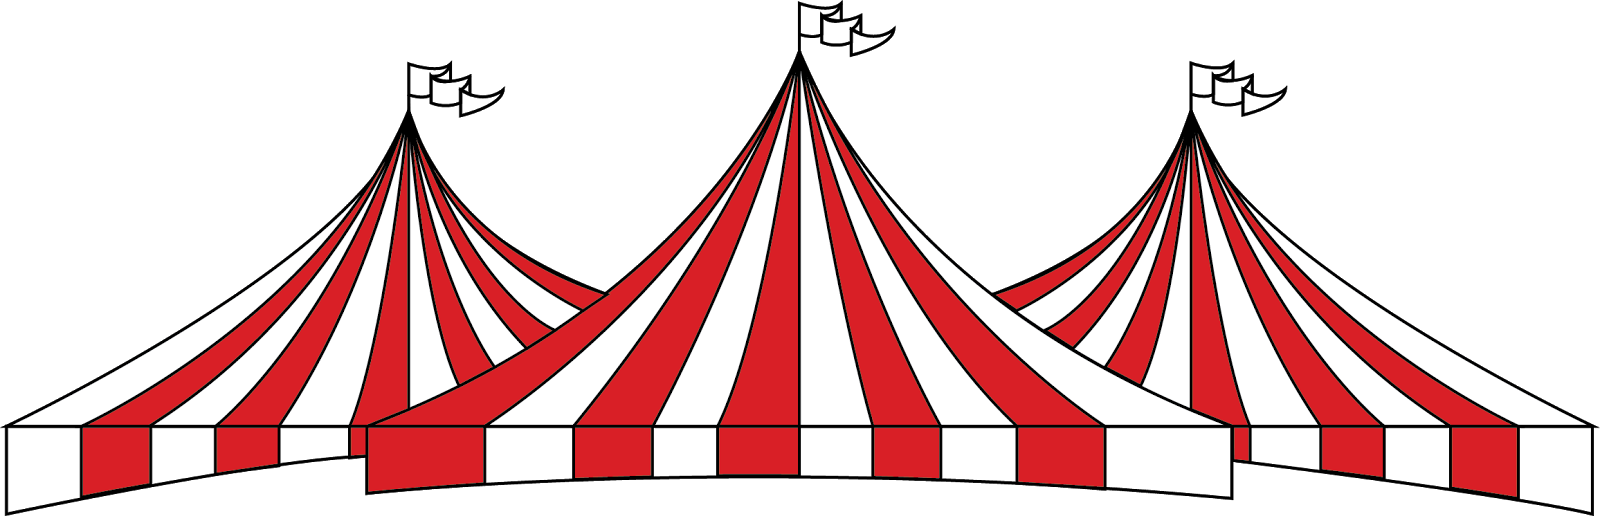 Eden lake about this. Volunteering clipart carnival